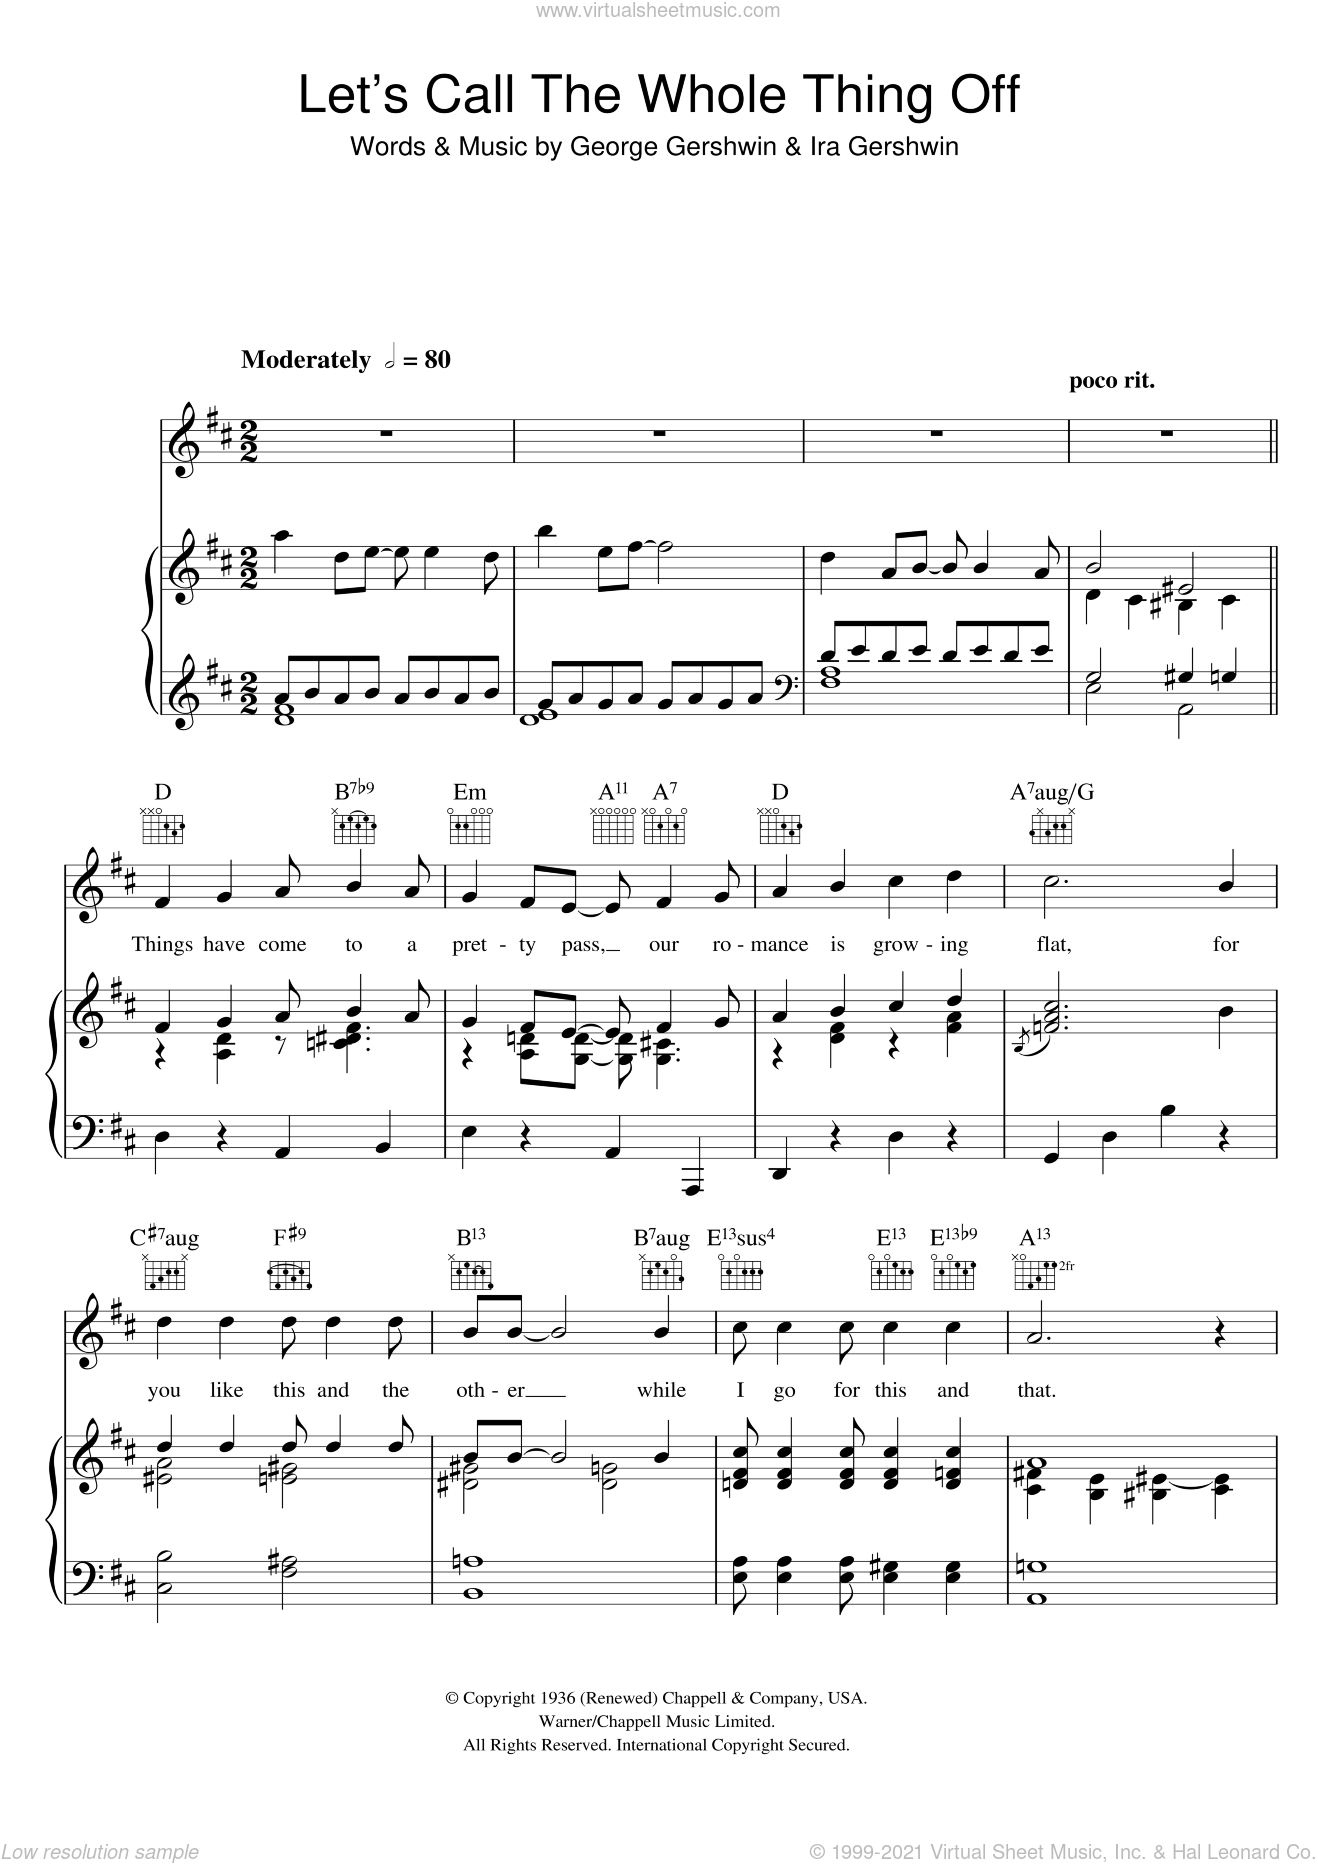 Let's Call The Whole Thing Off sheet music for voice, piano or guitar by George Gershwin and Ira Gershwin, intermediate